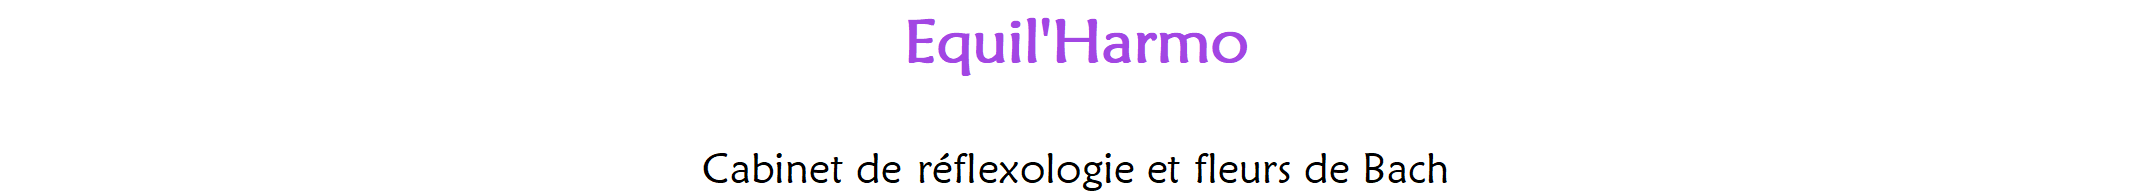 Equil'harmo